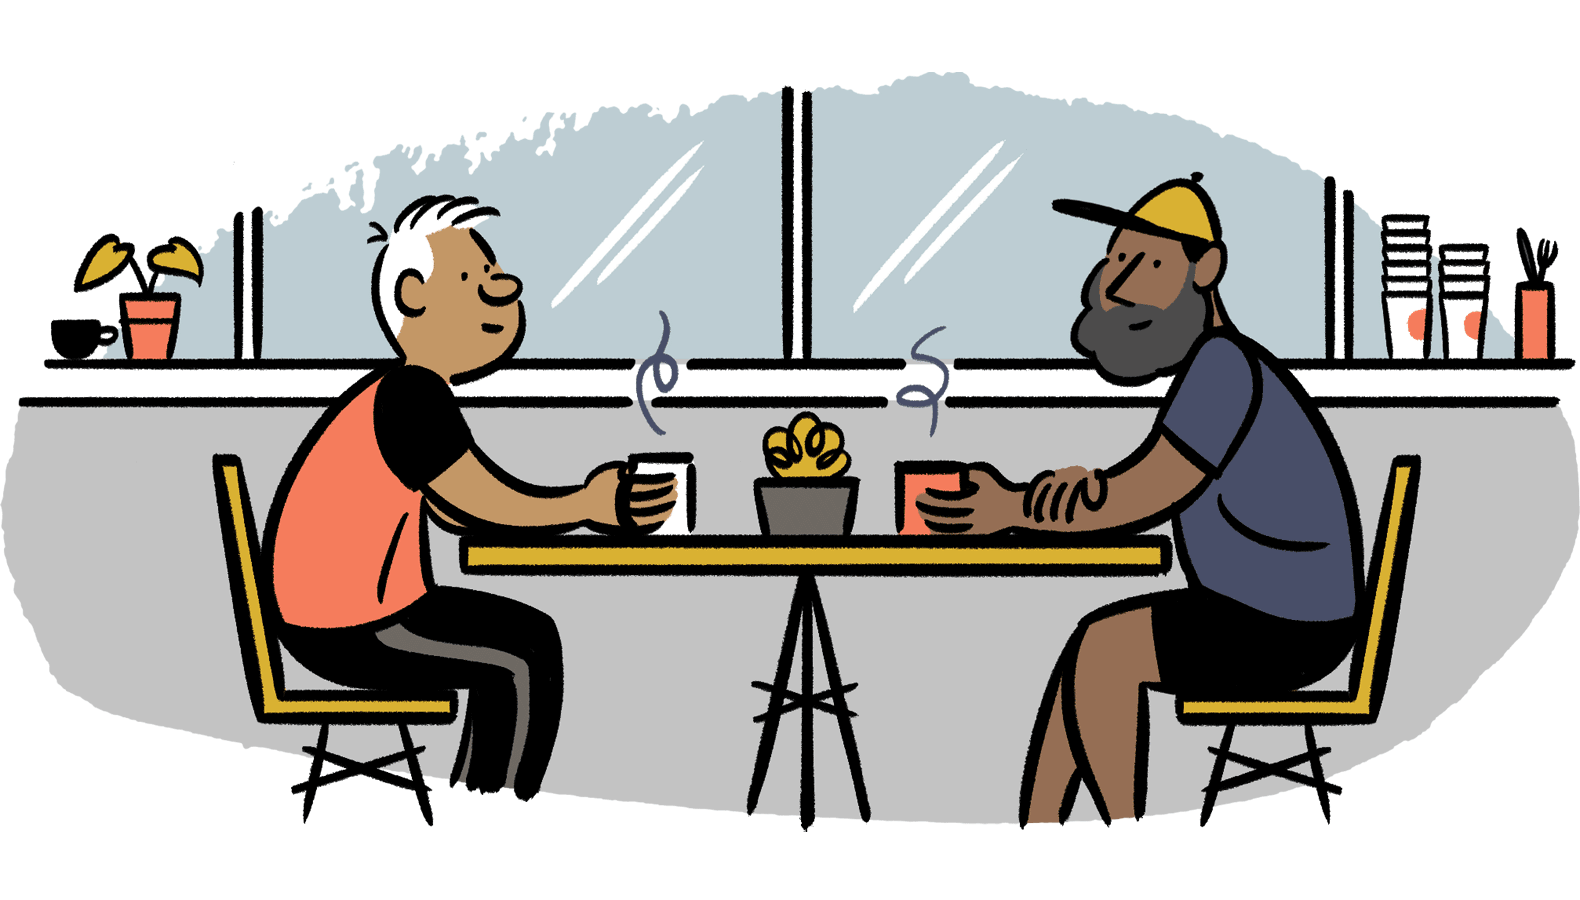 Two men chatting at a cafe.